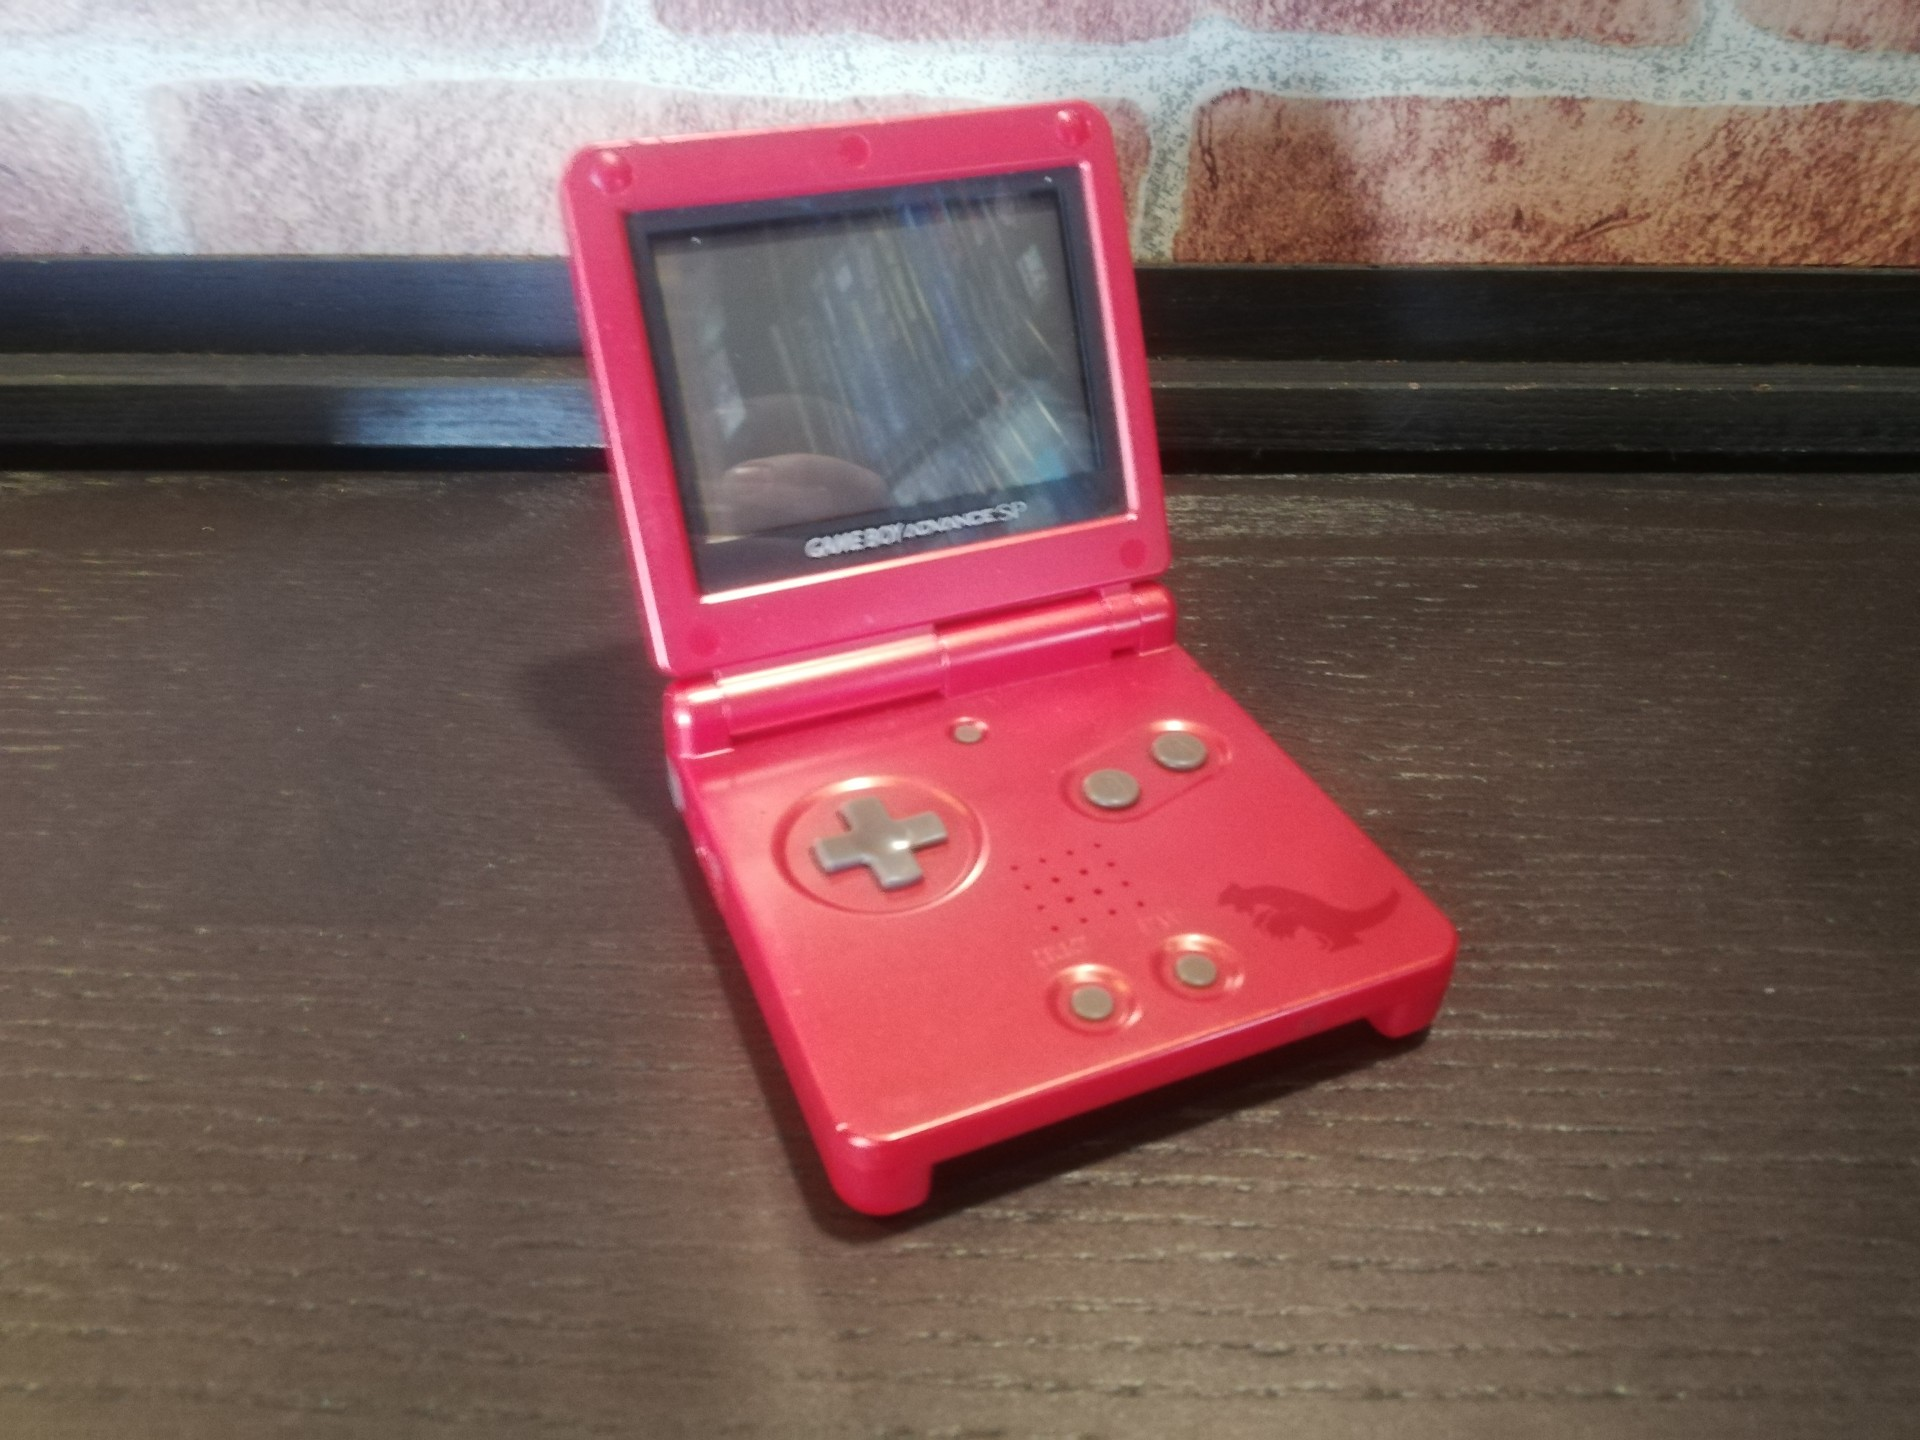 Gameboy Advance SP Groudon Limited Edition